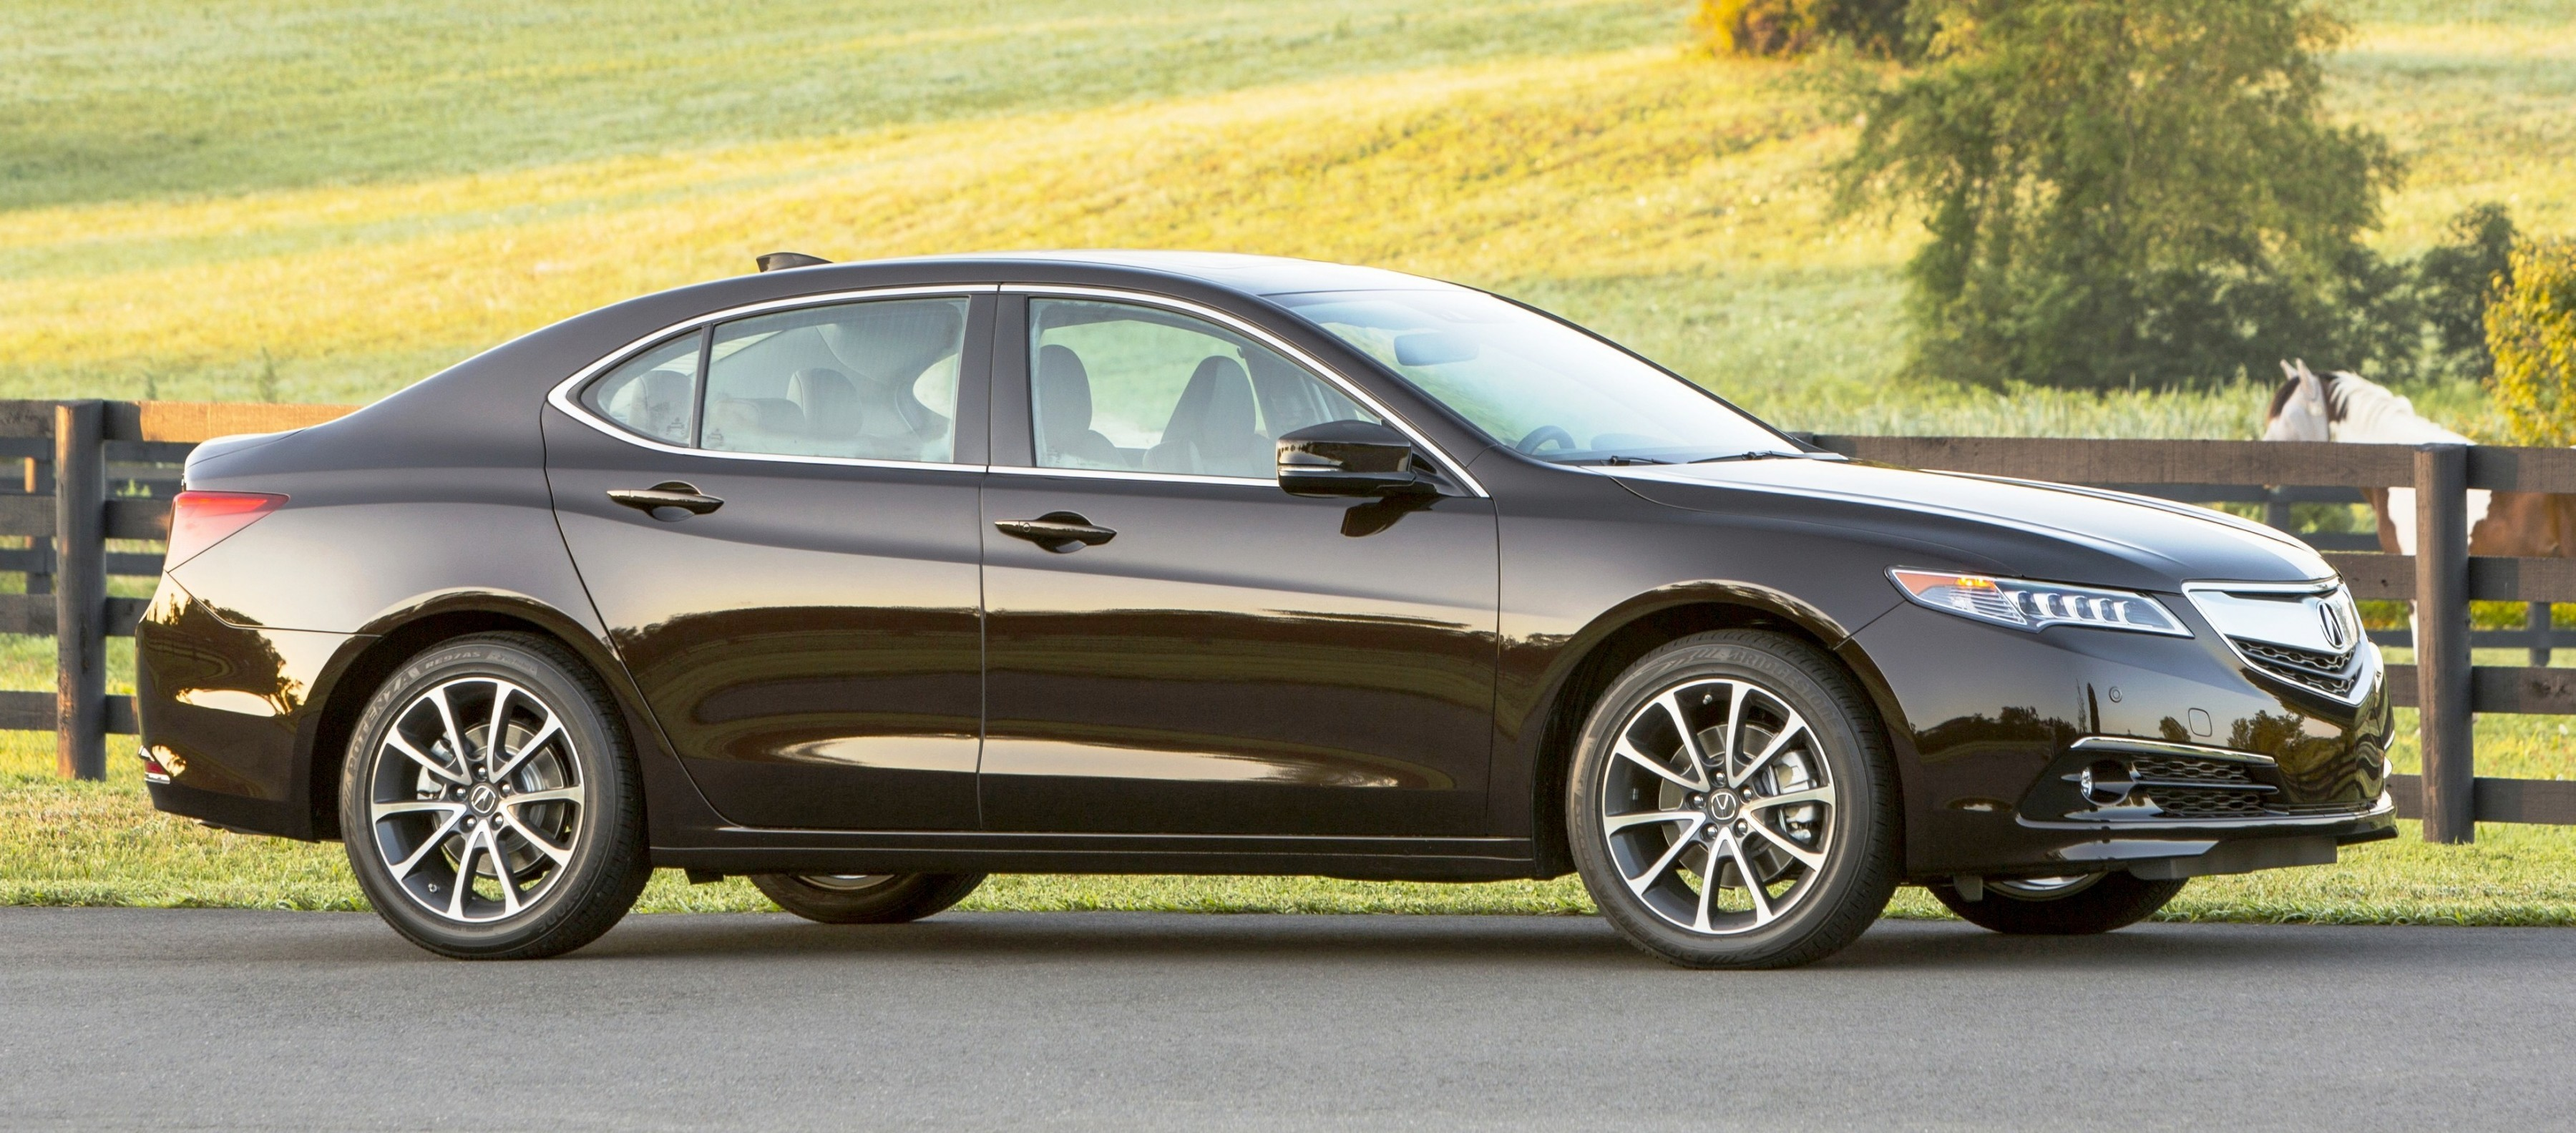 2015 acura tlx media launch brings 100 new photos pricing colors and specs 31k base price. Black Bedroom Furniture Sets. Home Design Ideas